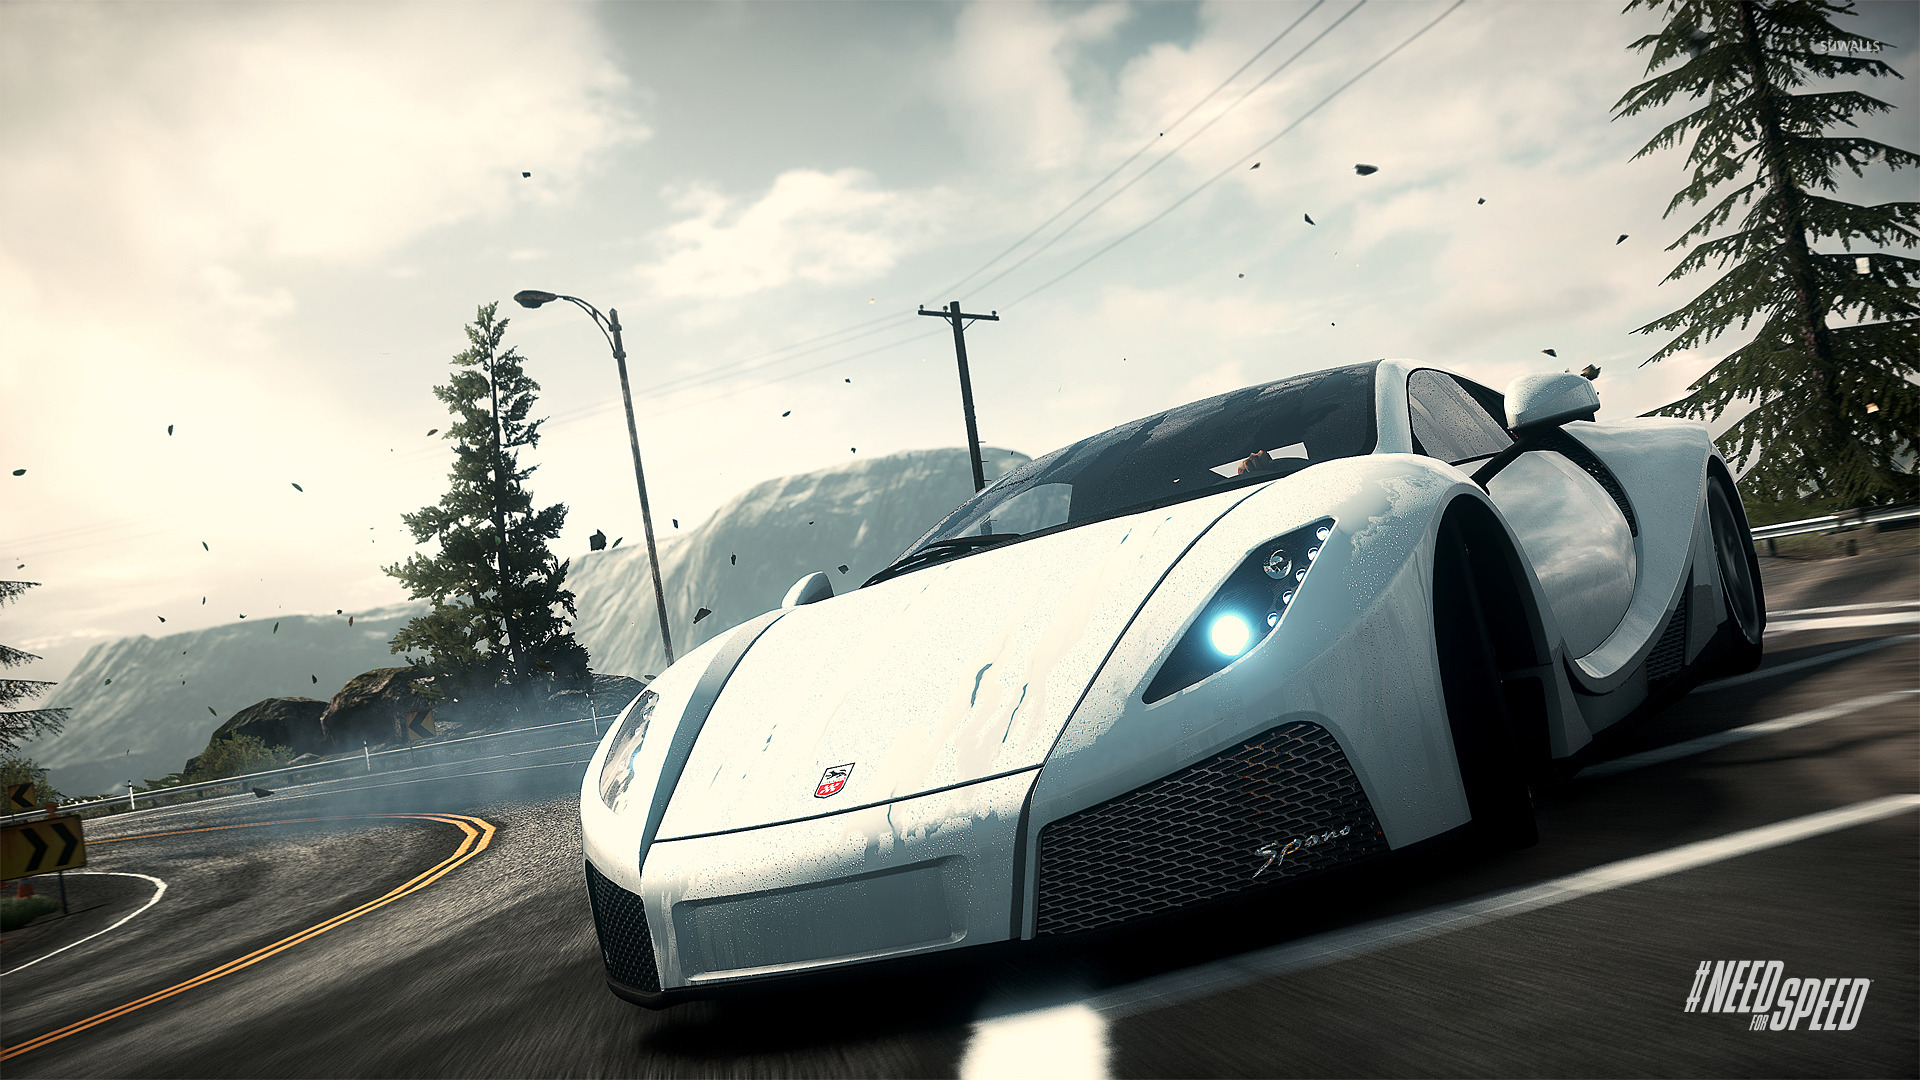 Nfs Movie Cars Wallpaper Gta Spano Need For Speed Rivals Wallpaper Game